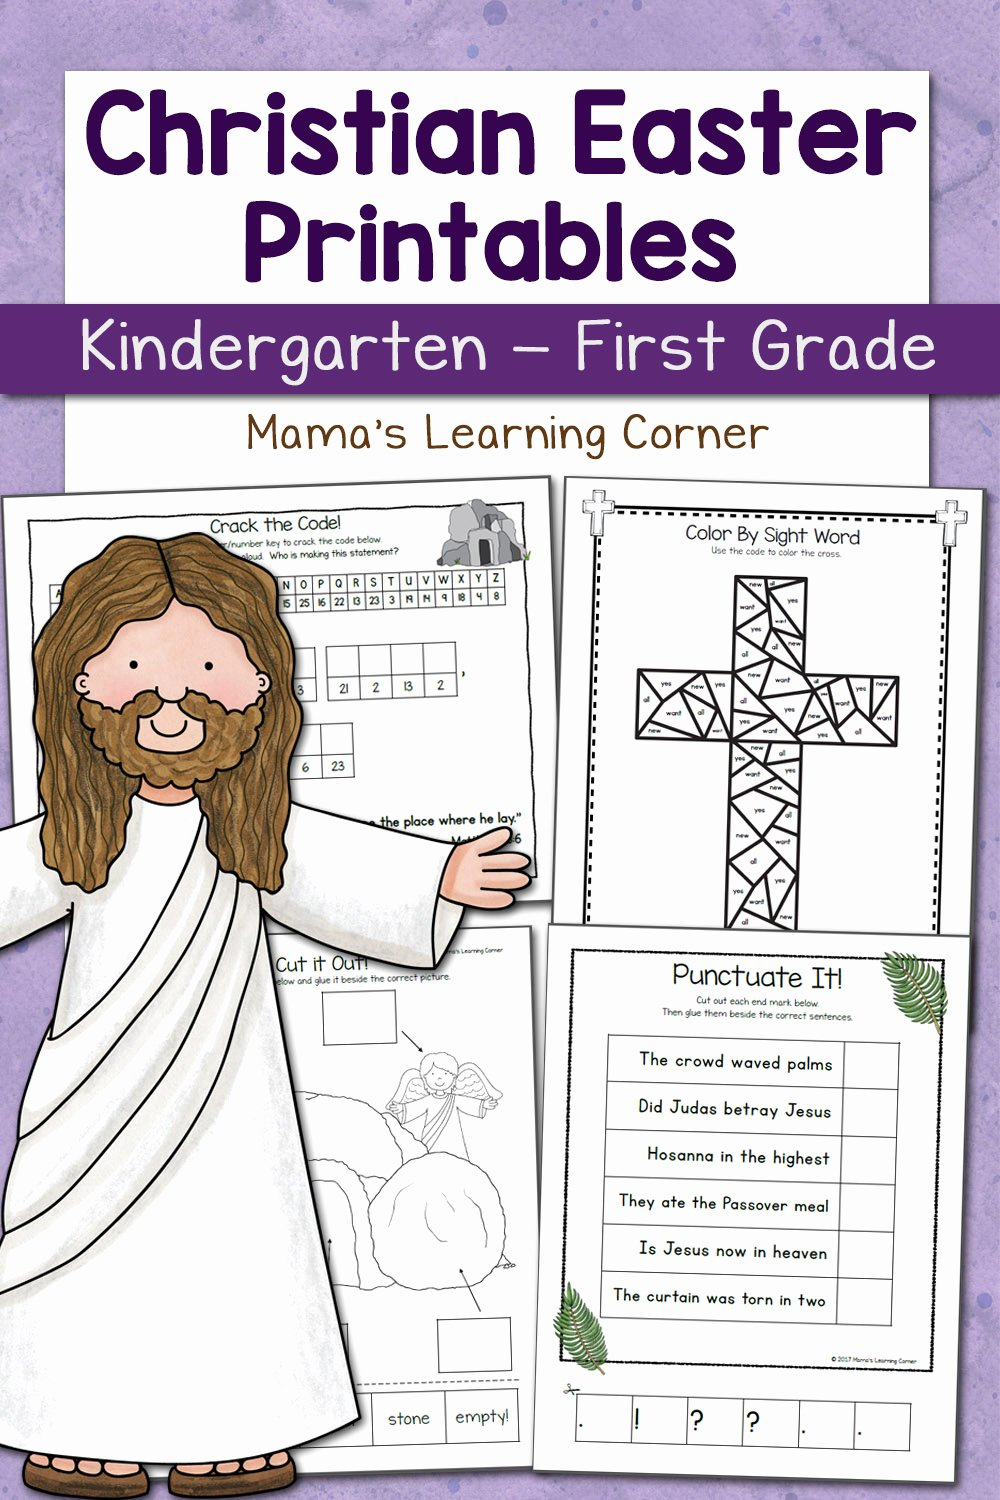 Christian Easter Worksheets for Preschoolers Kids Christian Easter Worksheets for Kindergarten and First Grade